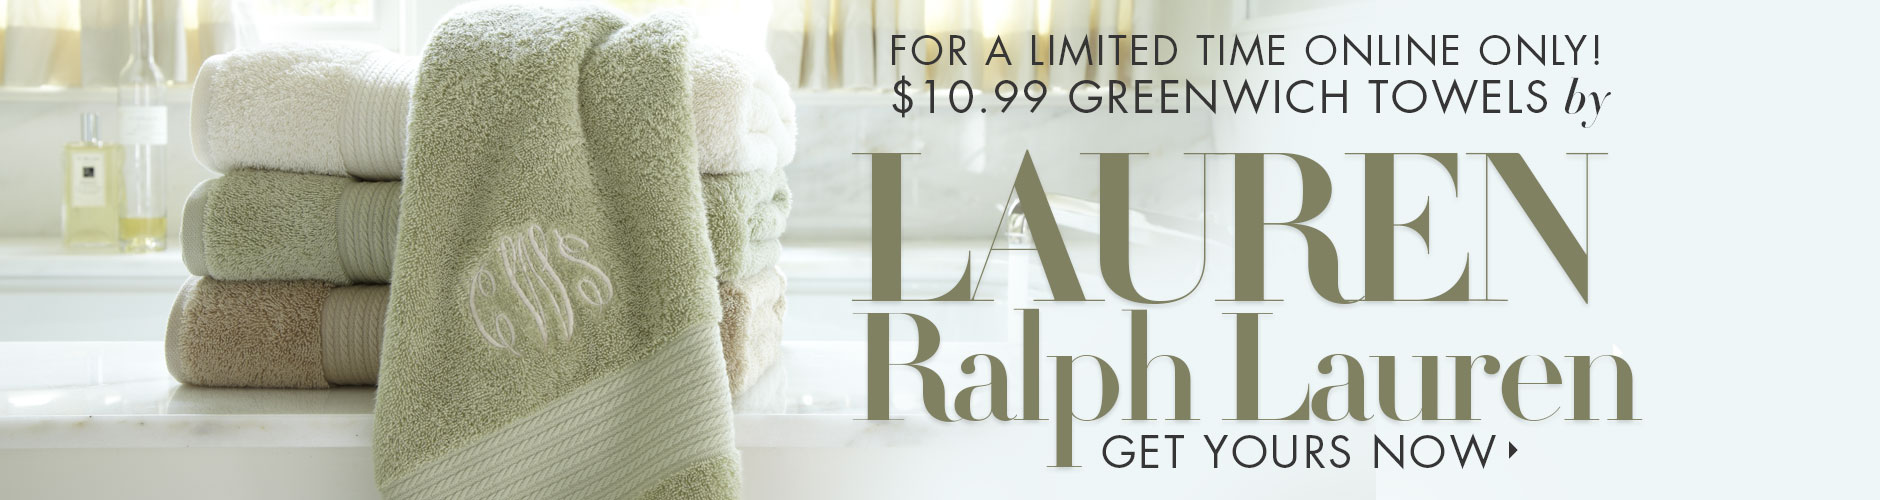 10.99 Greenwich towels by Lauren Ralph Lauren